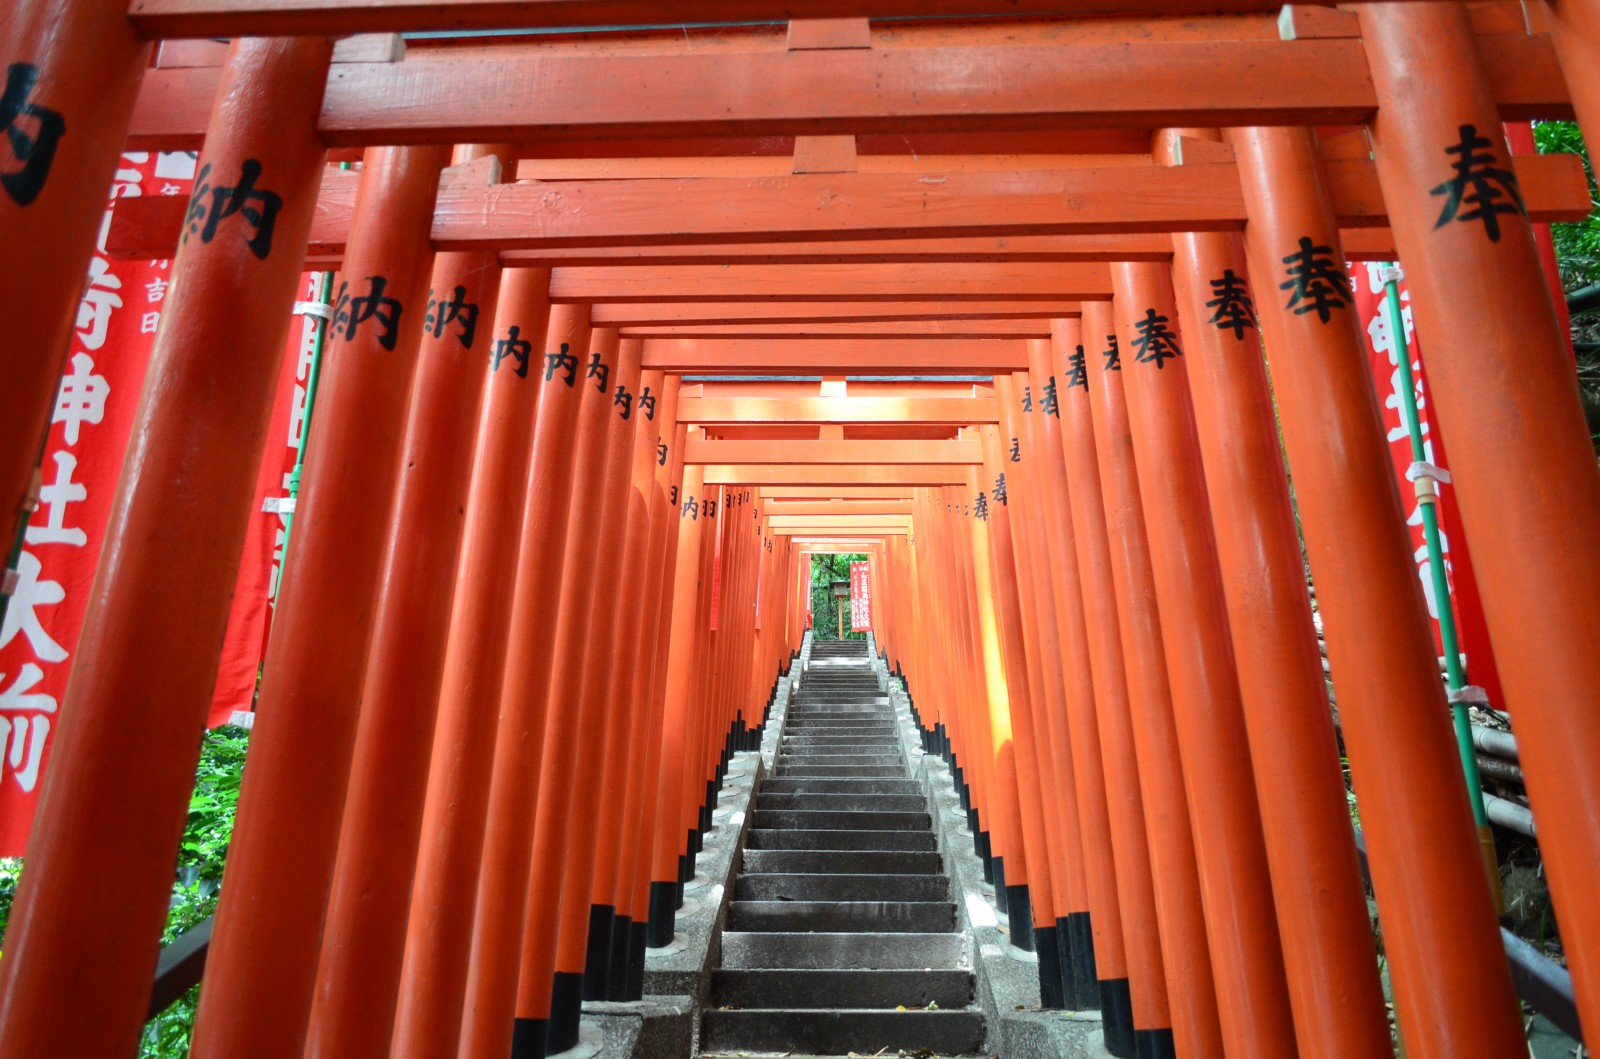 The stairs at Hie Shrine lined by red Torii gates